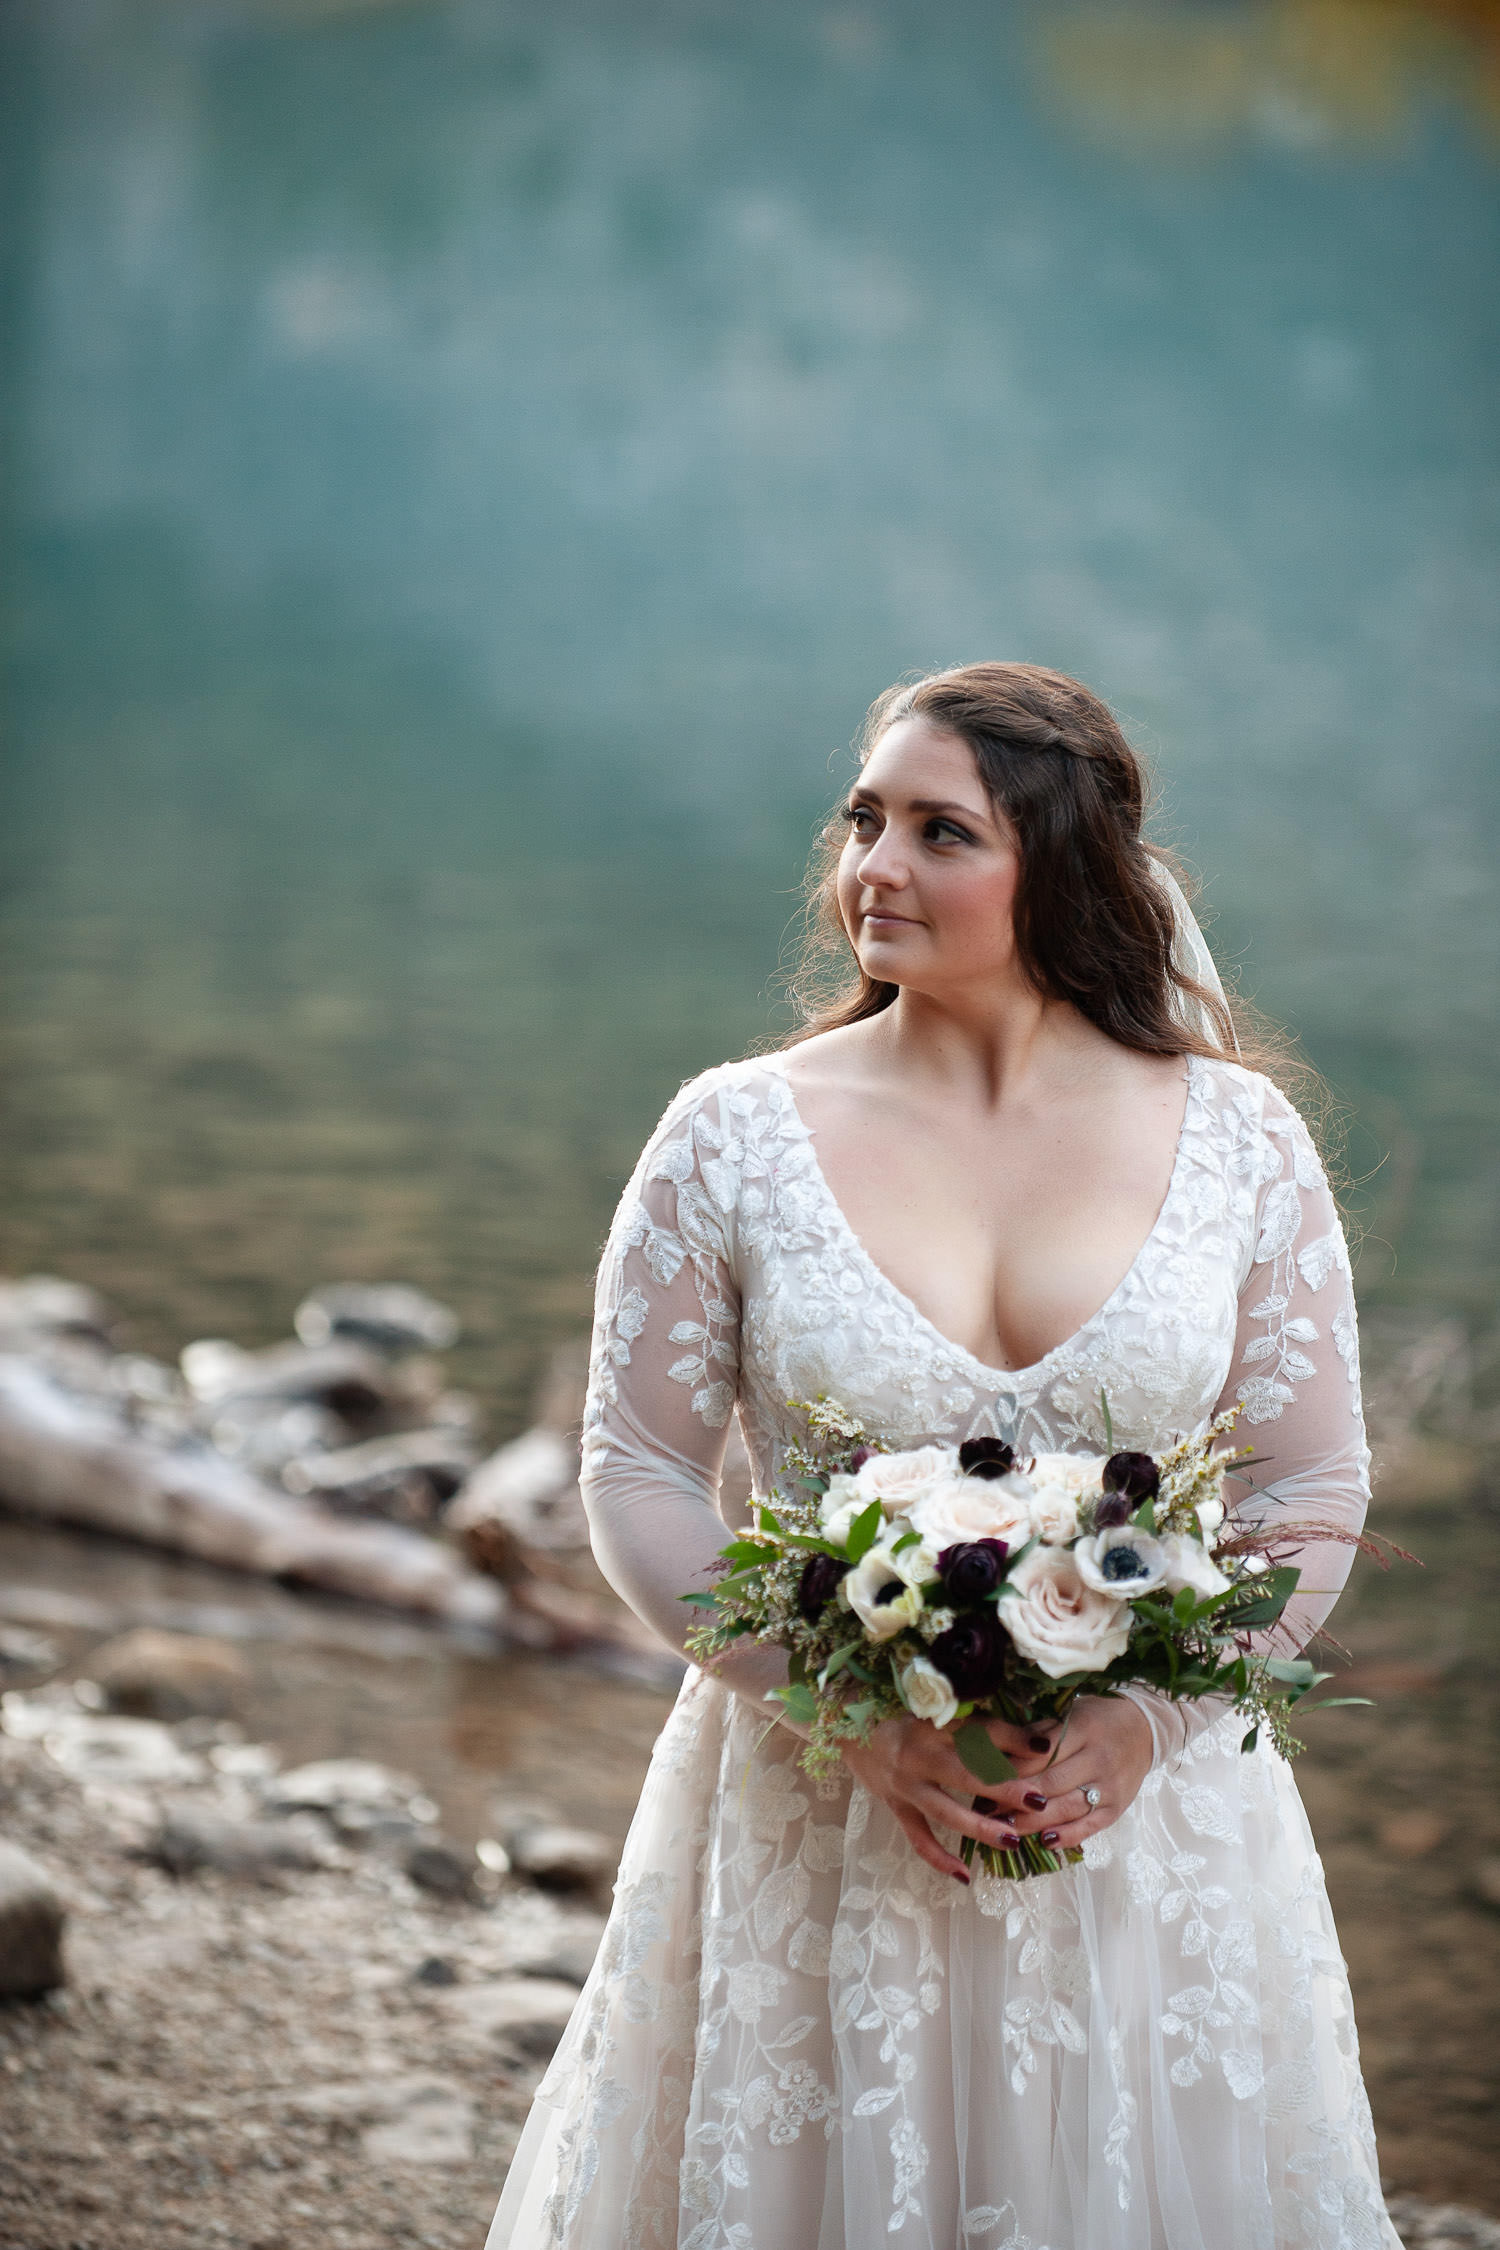 Bride at her Moraine Lake elopement captured by Tara Whittaker Photography